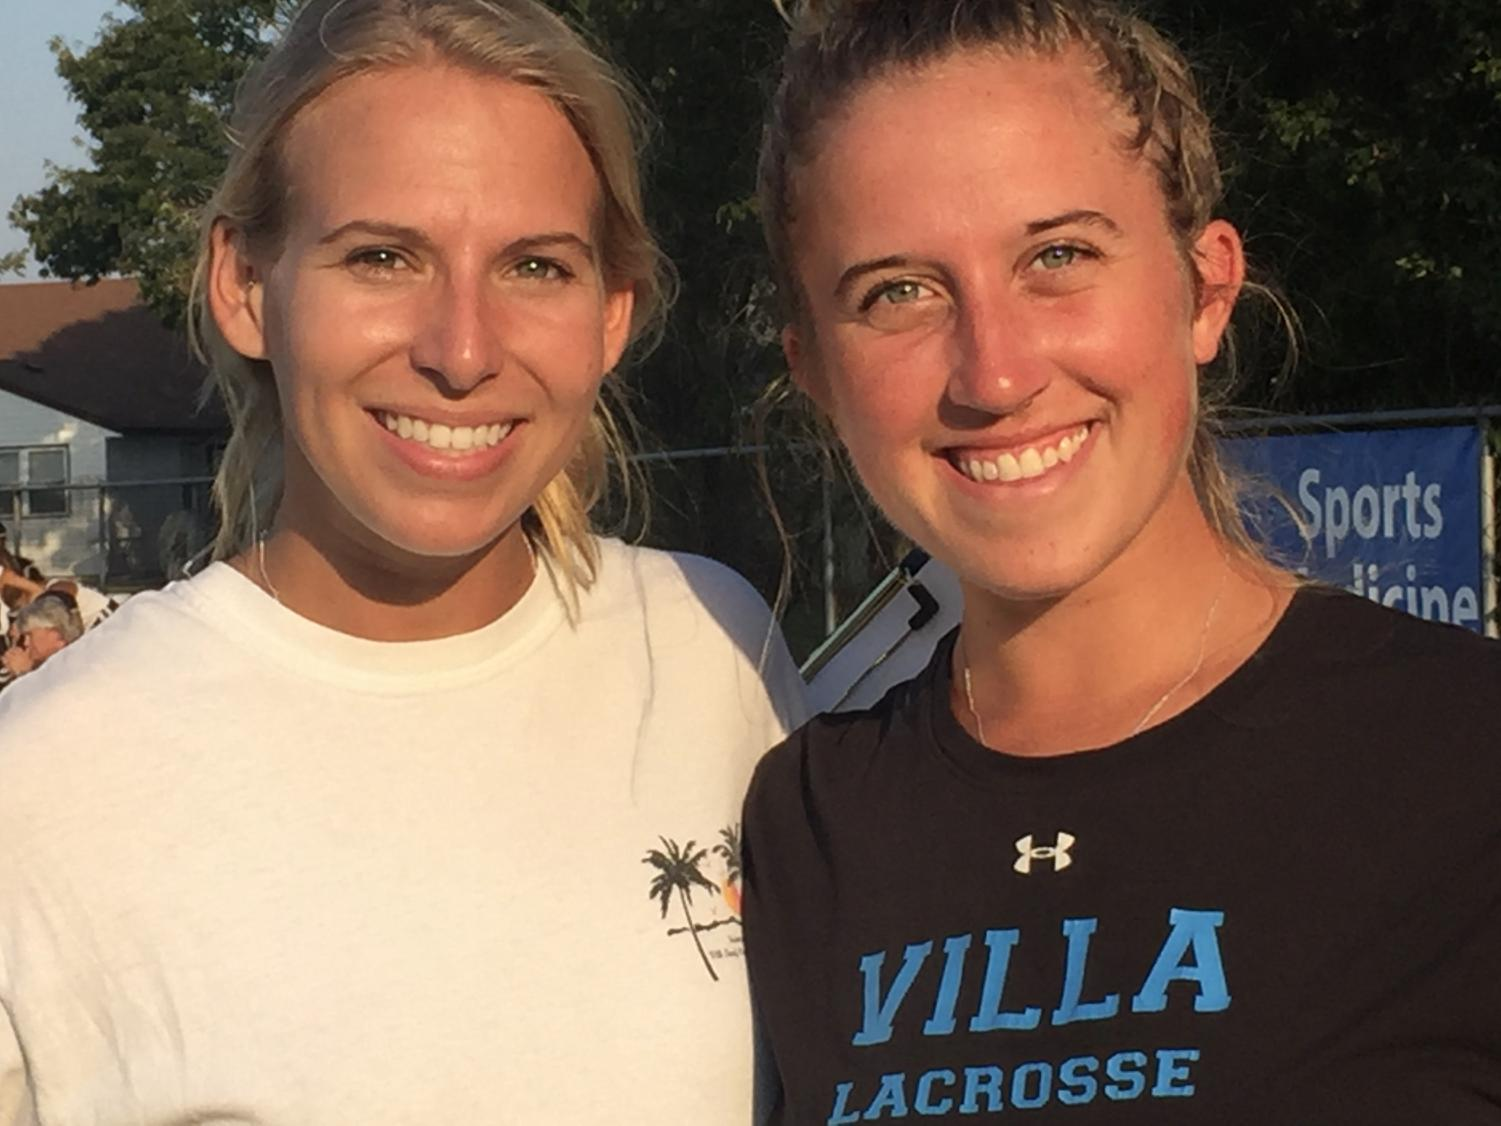 From left to right: field hockey coaches Kristen Vick and Alexandria Ostich smile after a victory at Salem High School on Oct. 3.